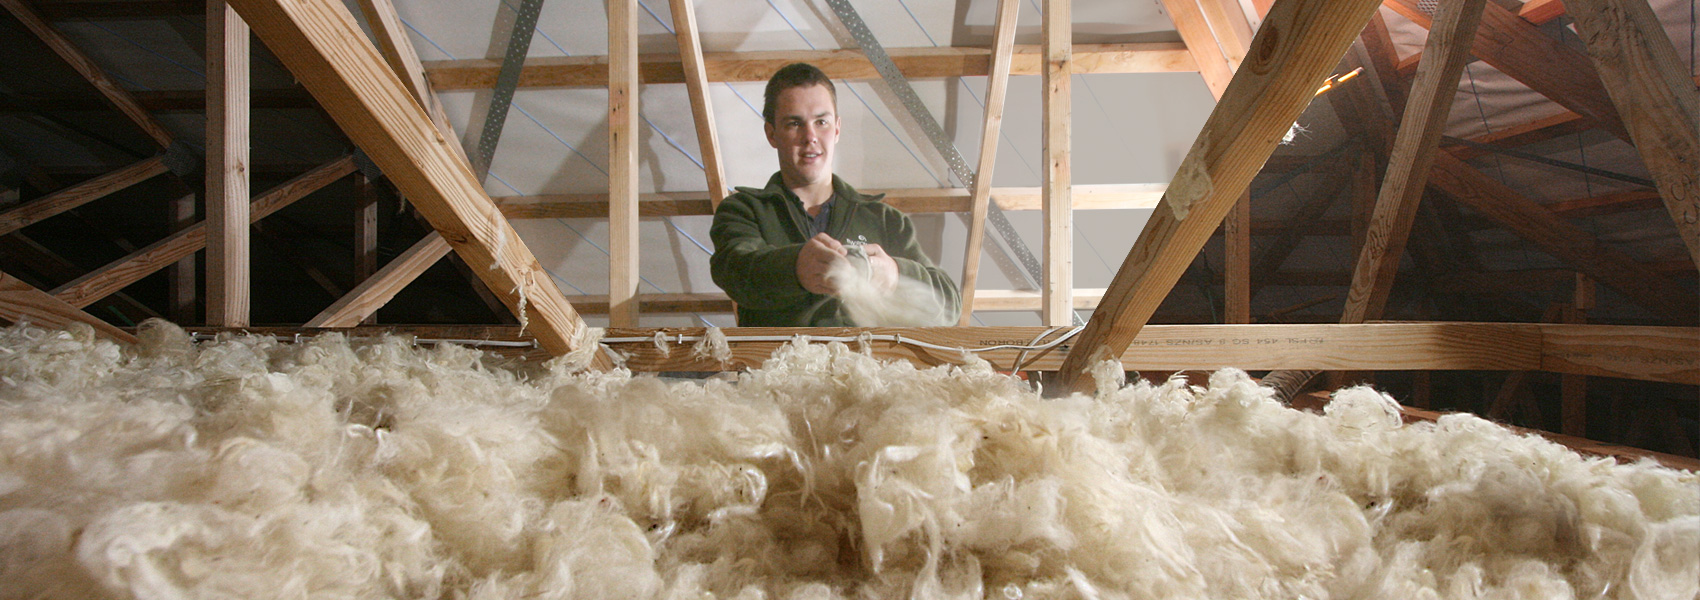 Why insulate